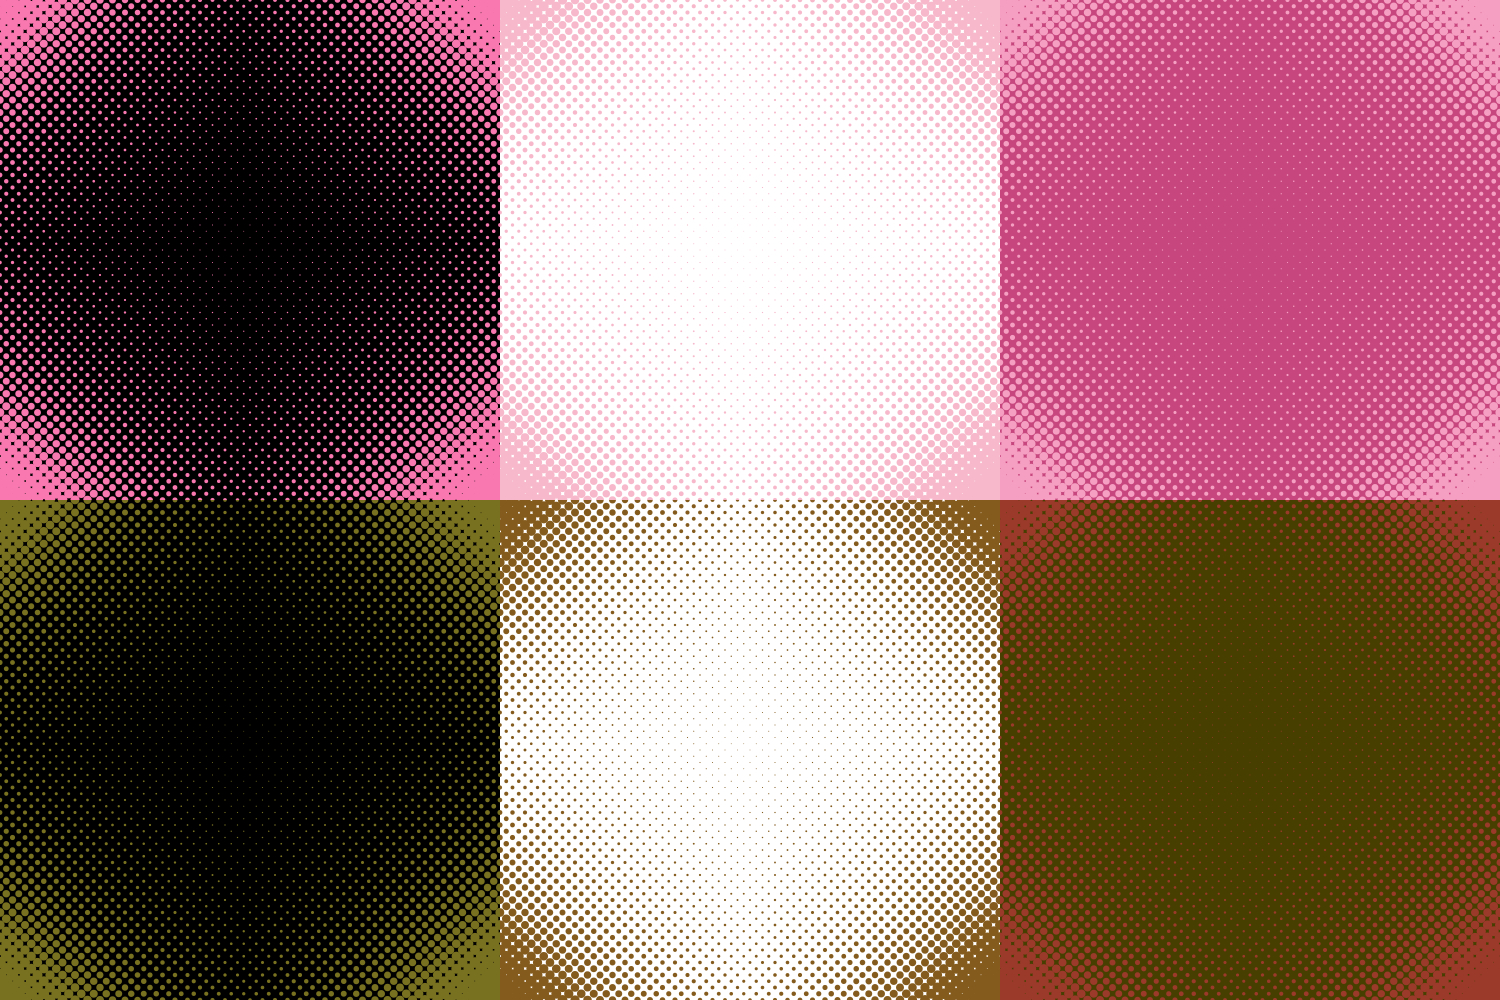 30 Halftone Circle Backgrounds AI, EPS, JPG 5000x5000 example image 7